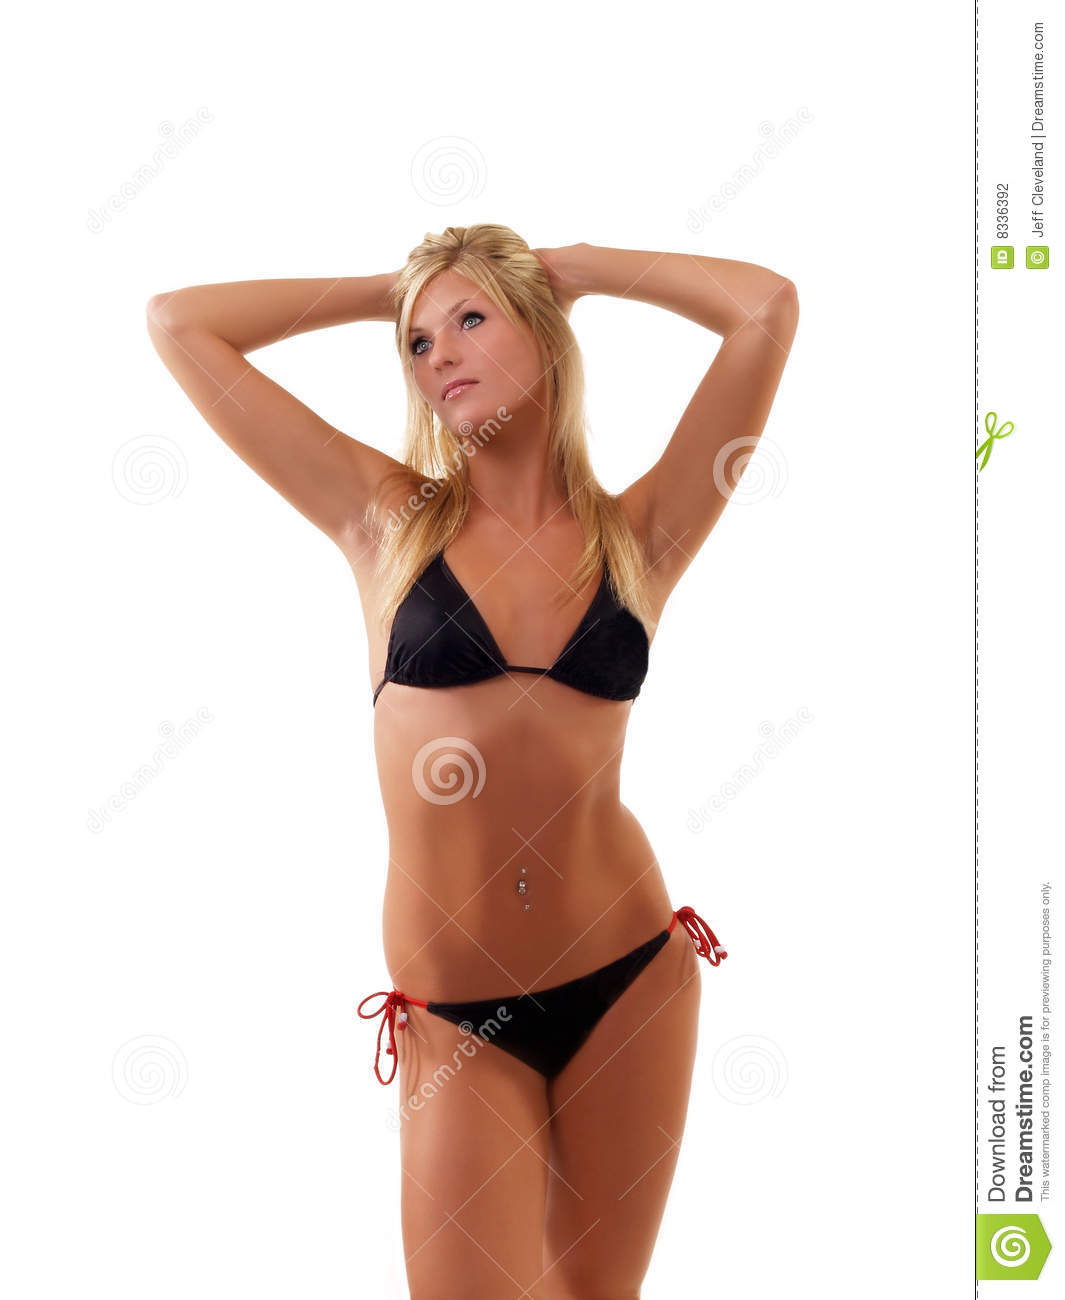 Young Skinny Blond Woman In Black Bikini Standing Stock Photo Image Of Young Lady 8336392